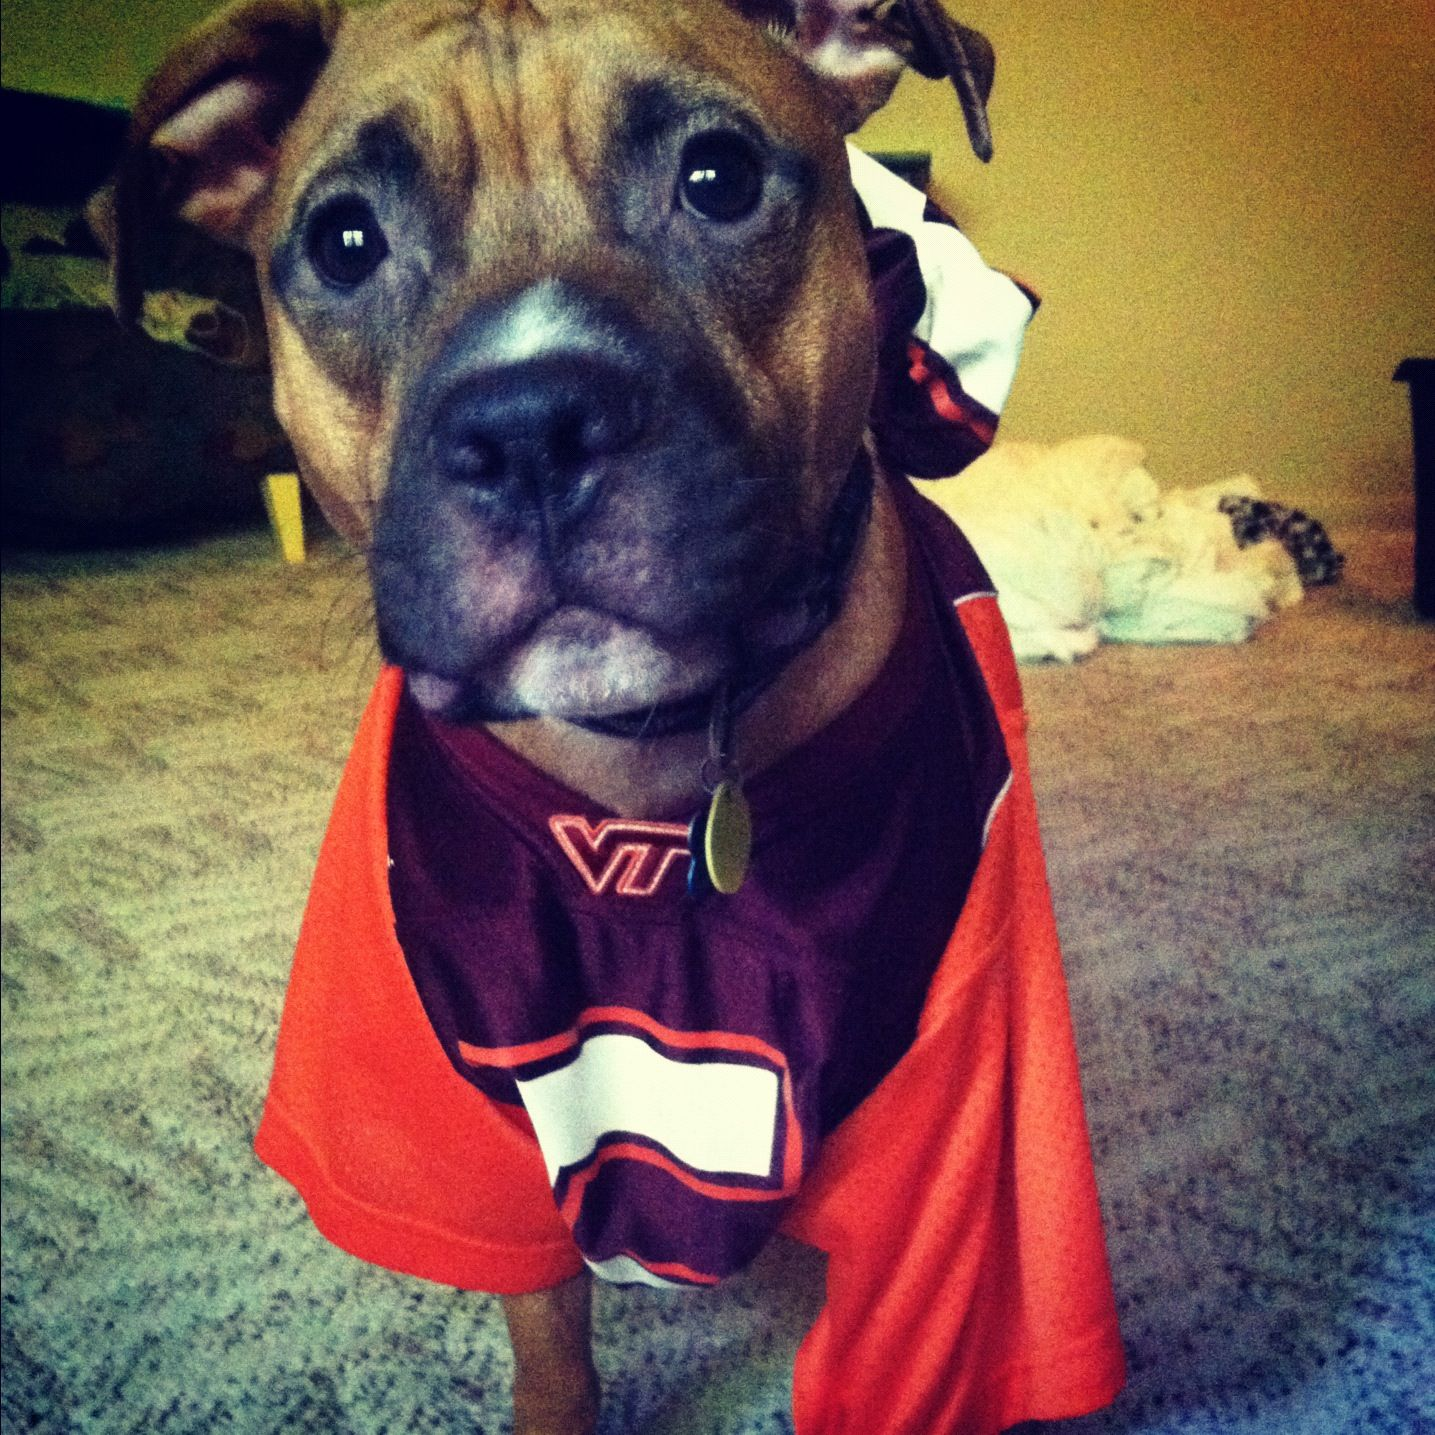 Ben in Florida shows his Hokie pride! I love dogs, Dogs